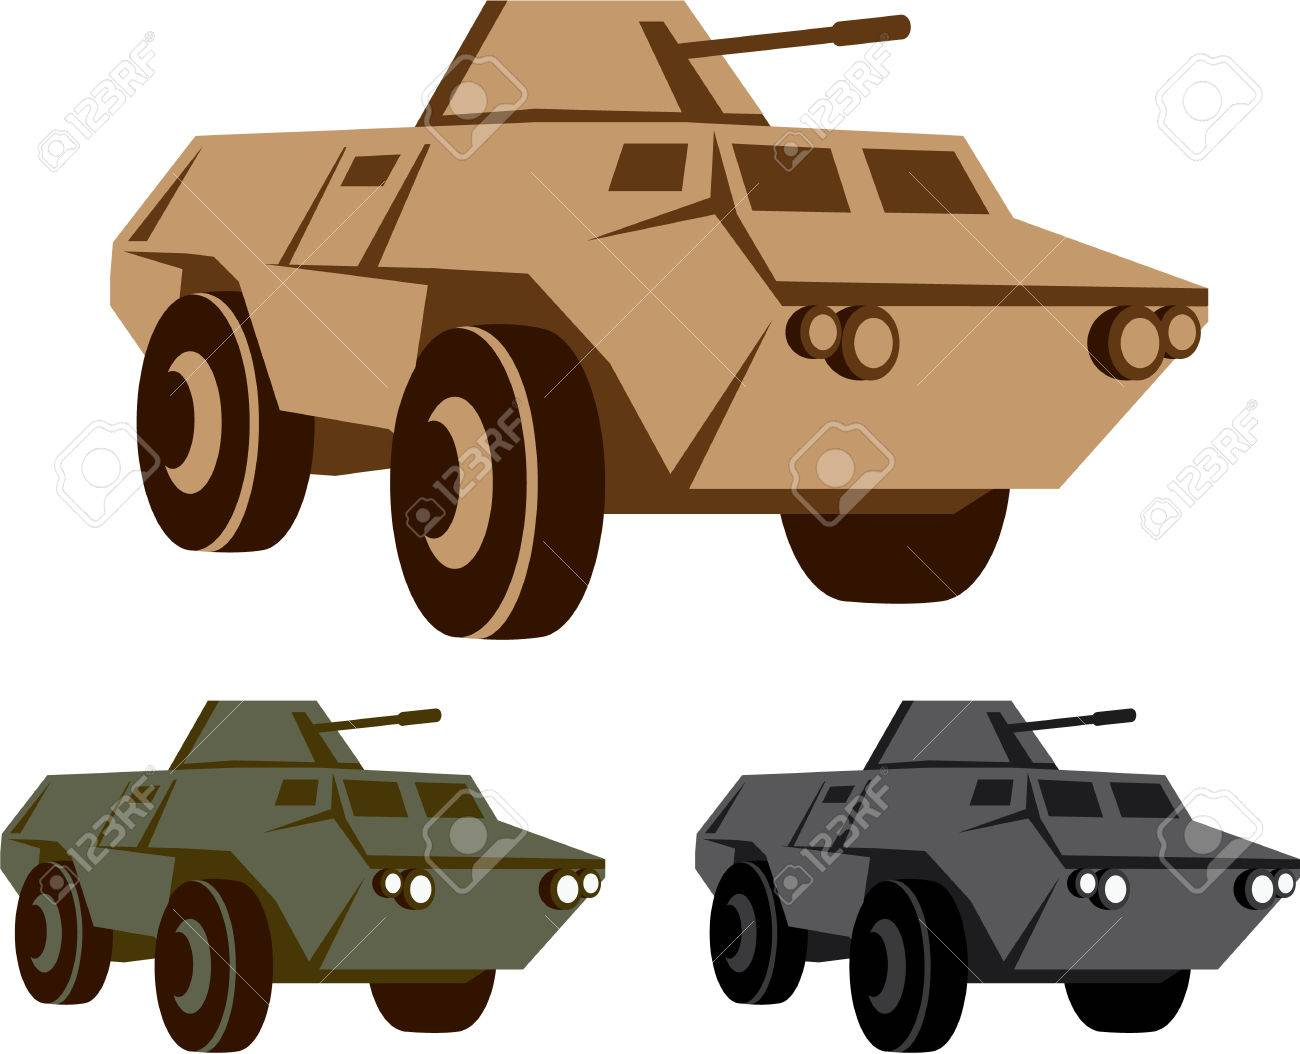 APC vector illustration military vehicle clip.